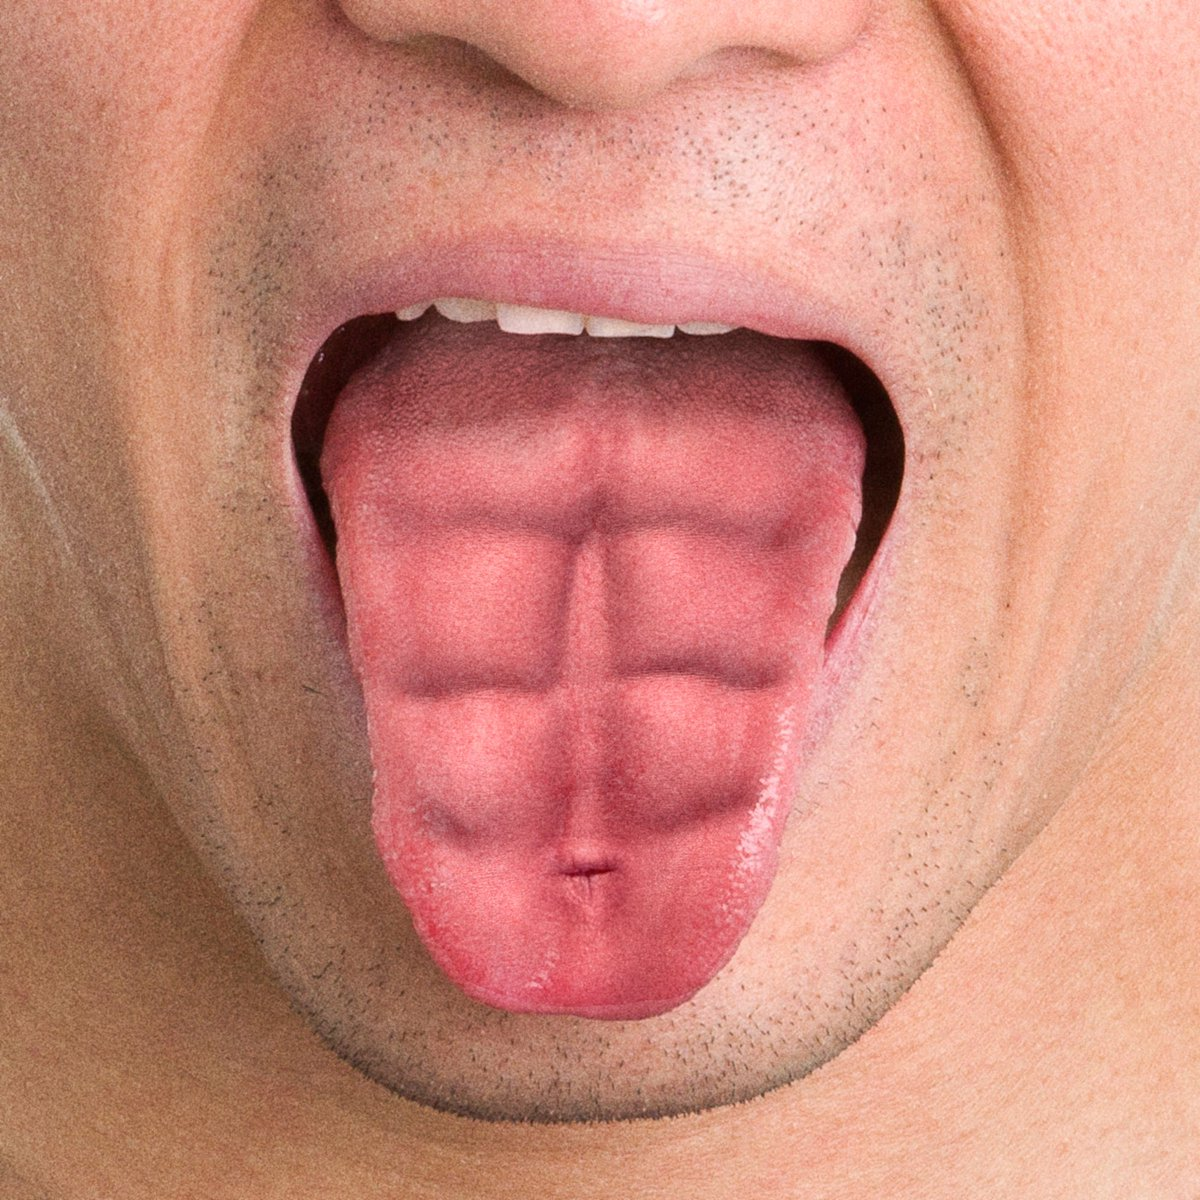 Never skip tongue day https://t.co/39s7o8ZQUV